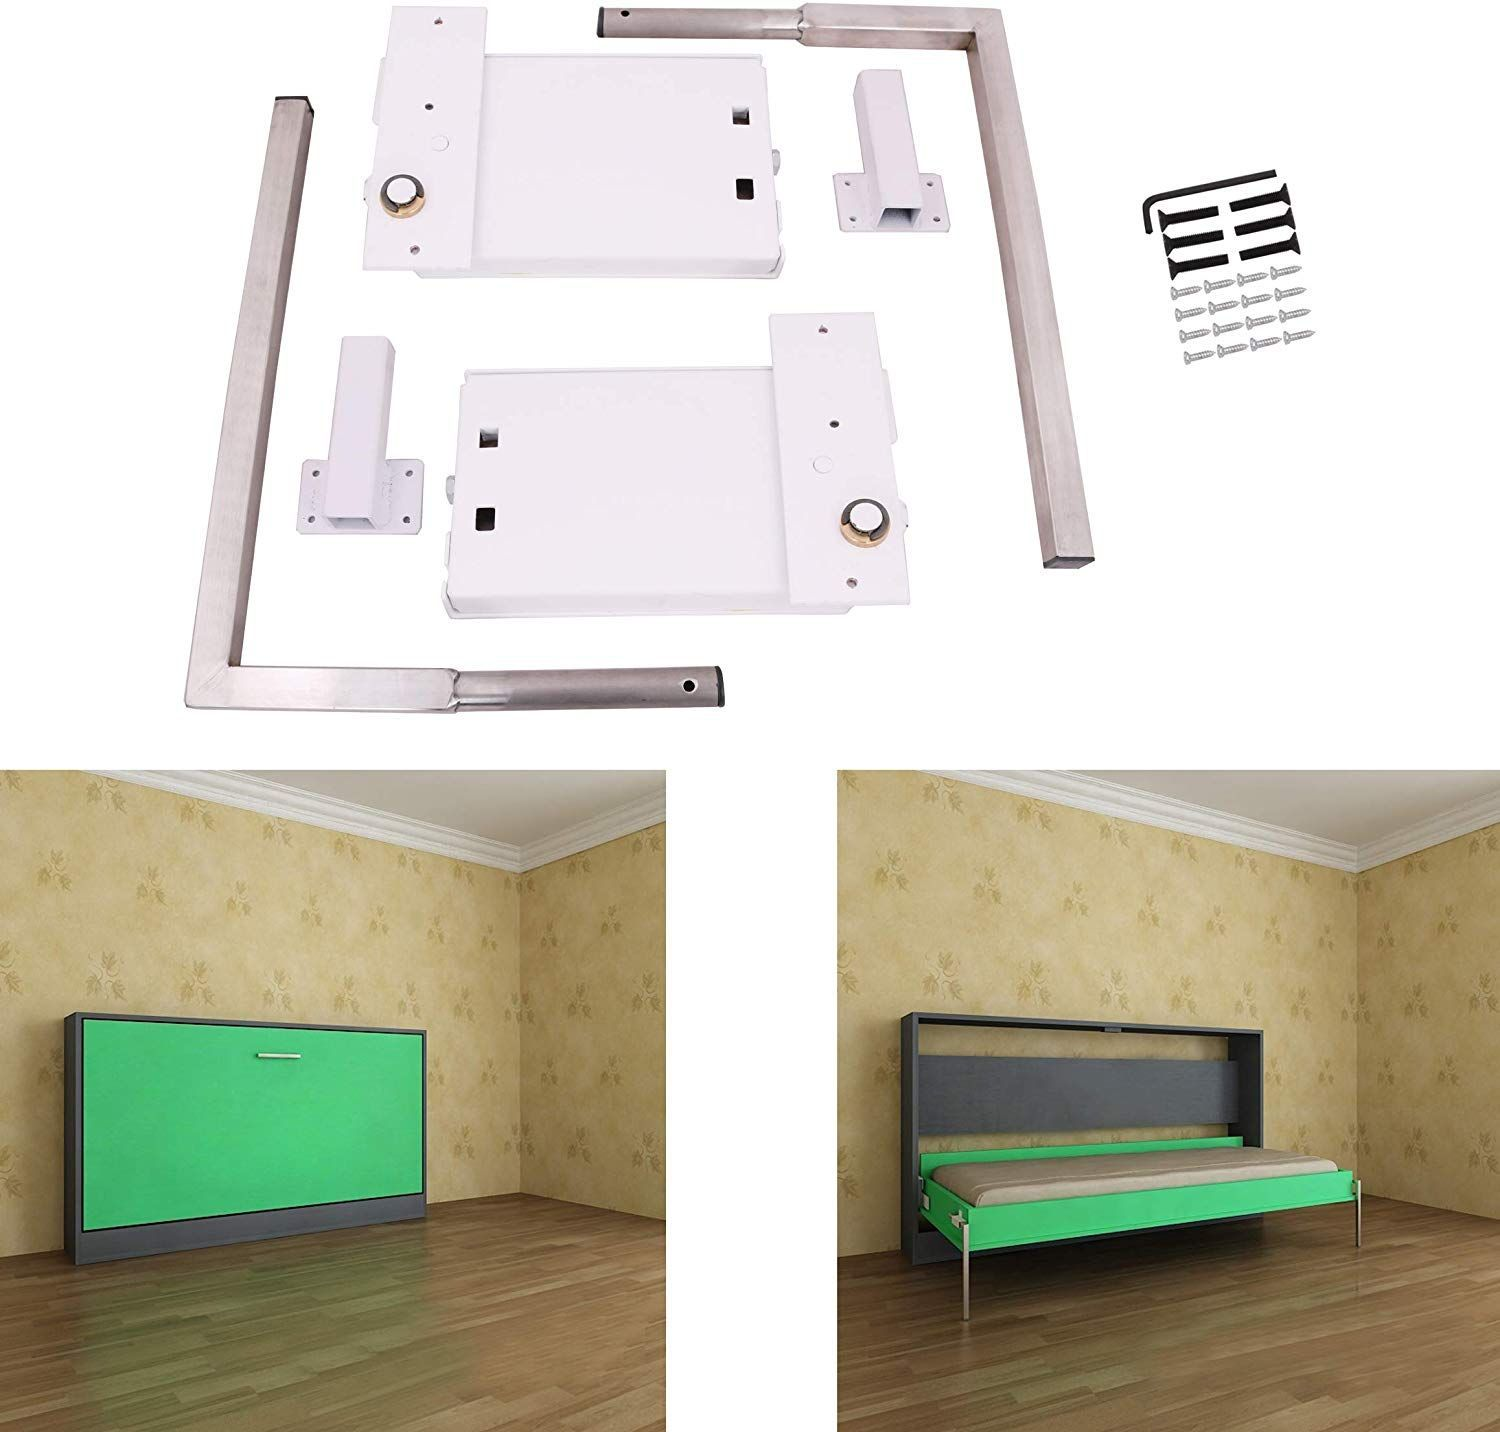 ECLV Horizontal Murphy Wall Bed Springs Mechanism Hardware